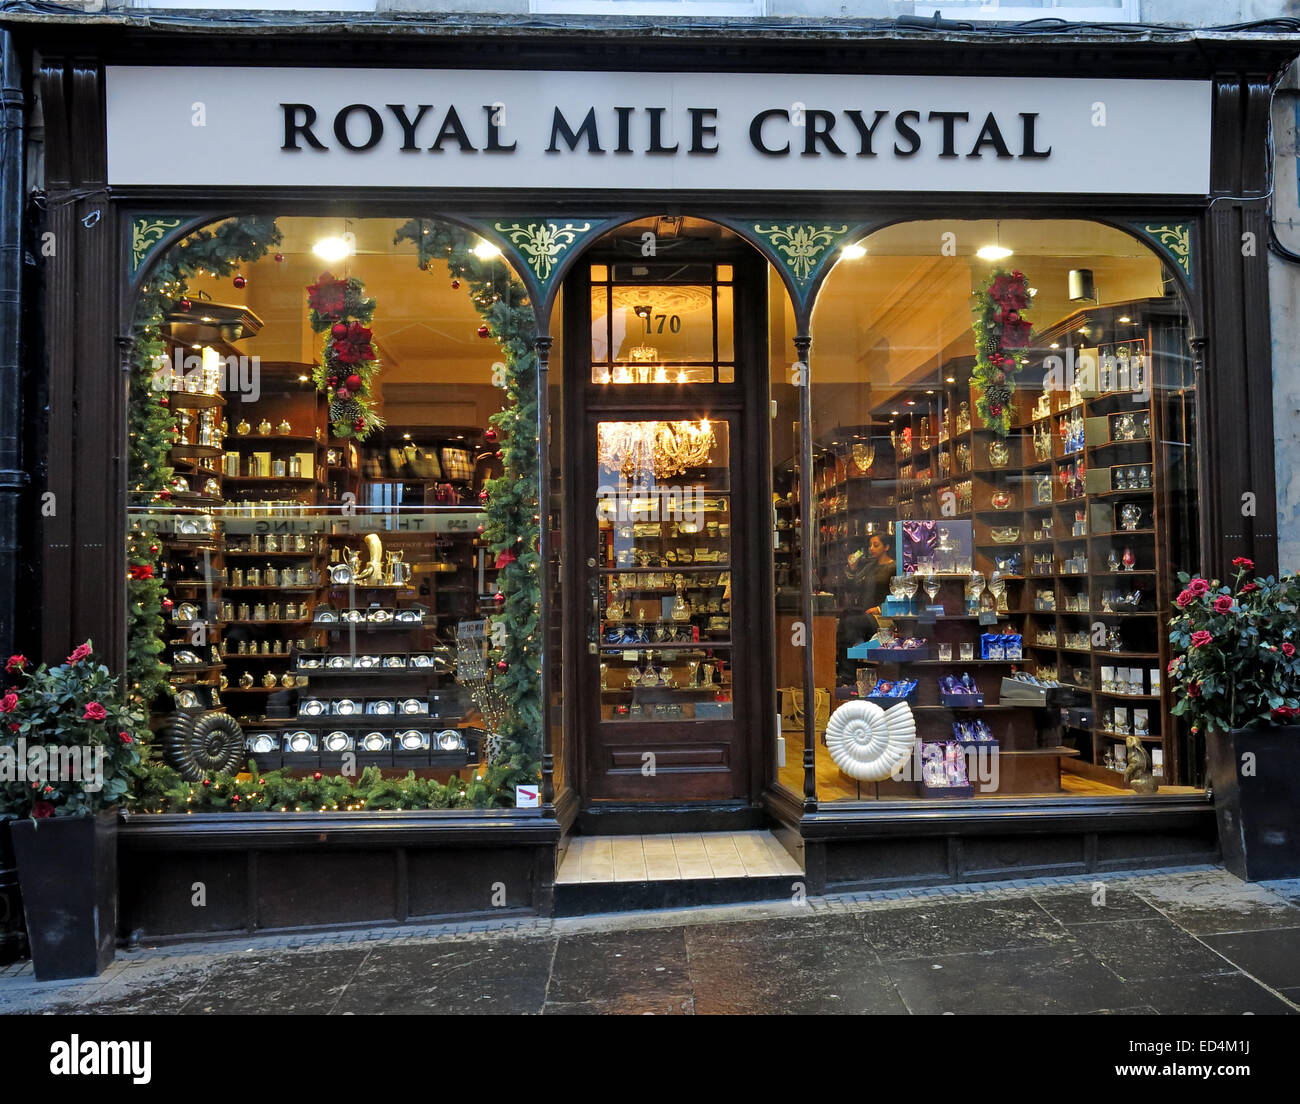 Royal Mile Crystal shop,High St,Edinburgh Old Town,Scotland, UK - Stock Image